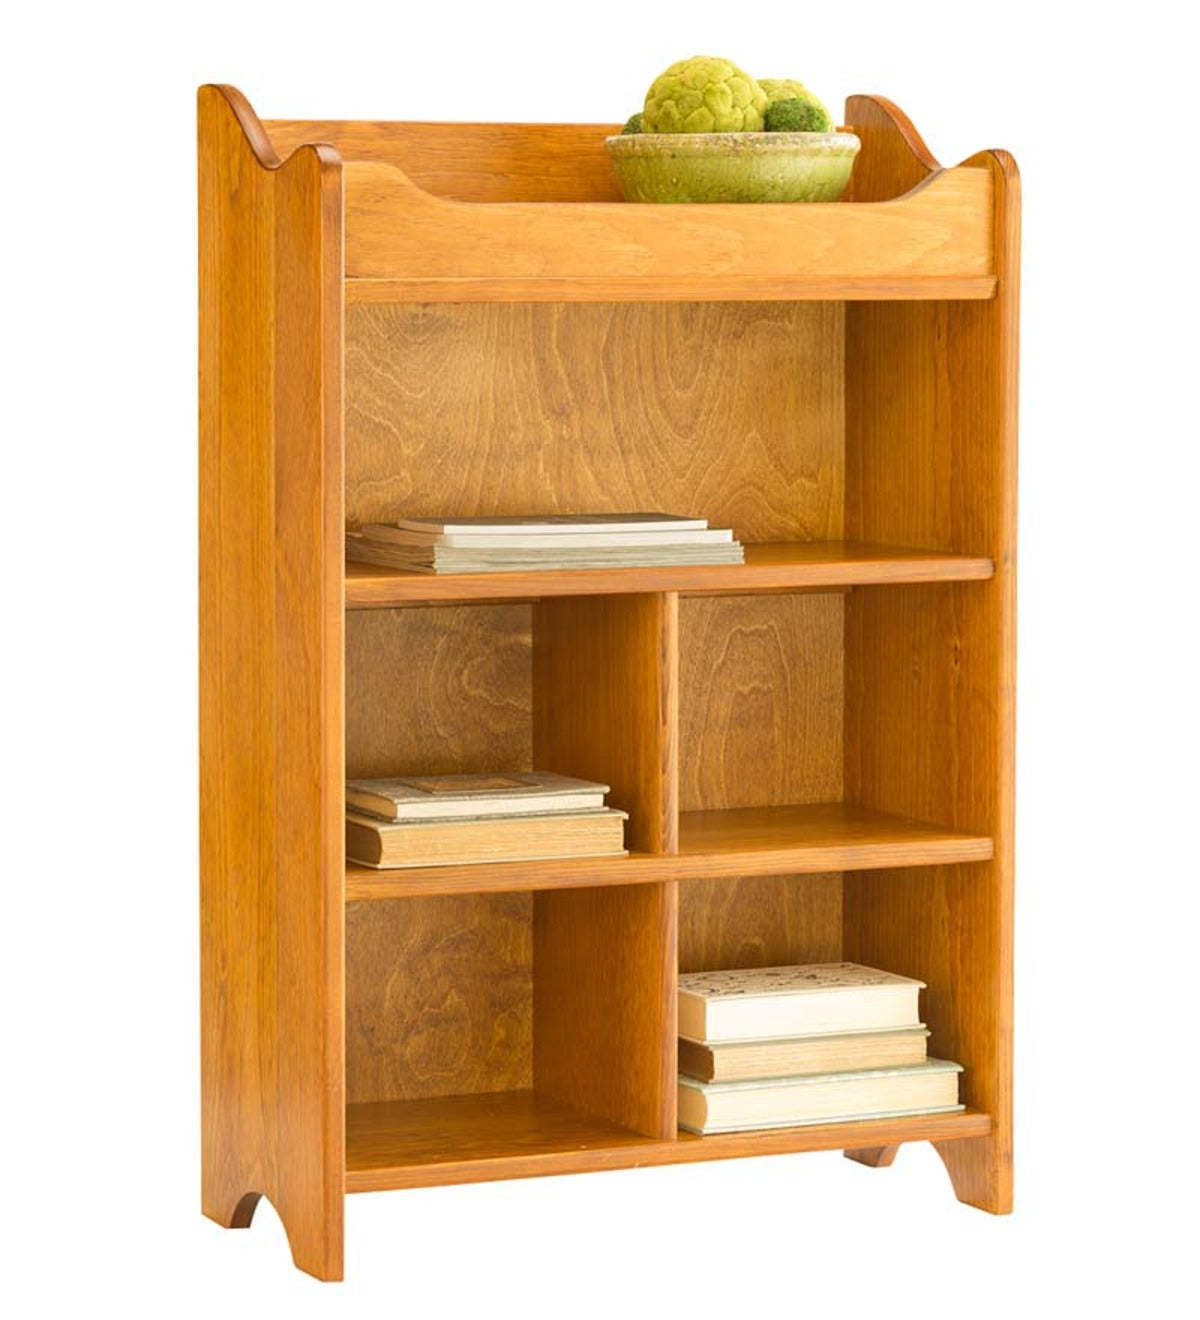 USA-Made Solid Pine Dry Sink Storage Cabinet - Honey Pine